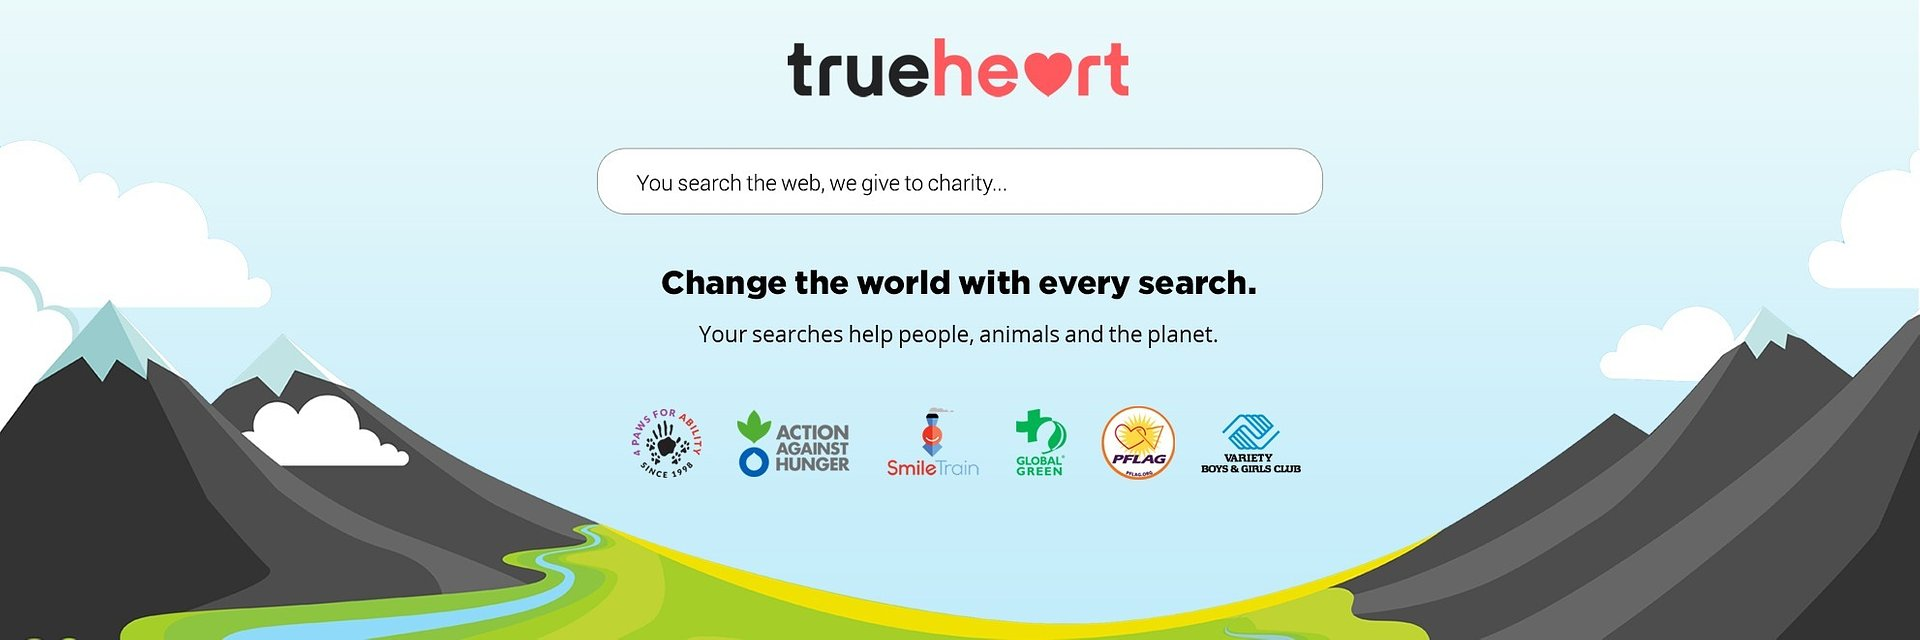 PROMOTE ANIMAL WELFARE WITH EVERY SEARCH AT TRUEHEART